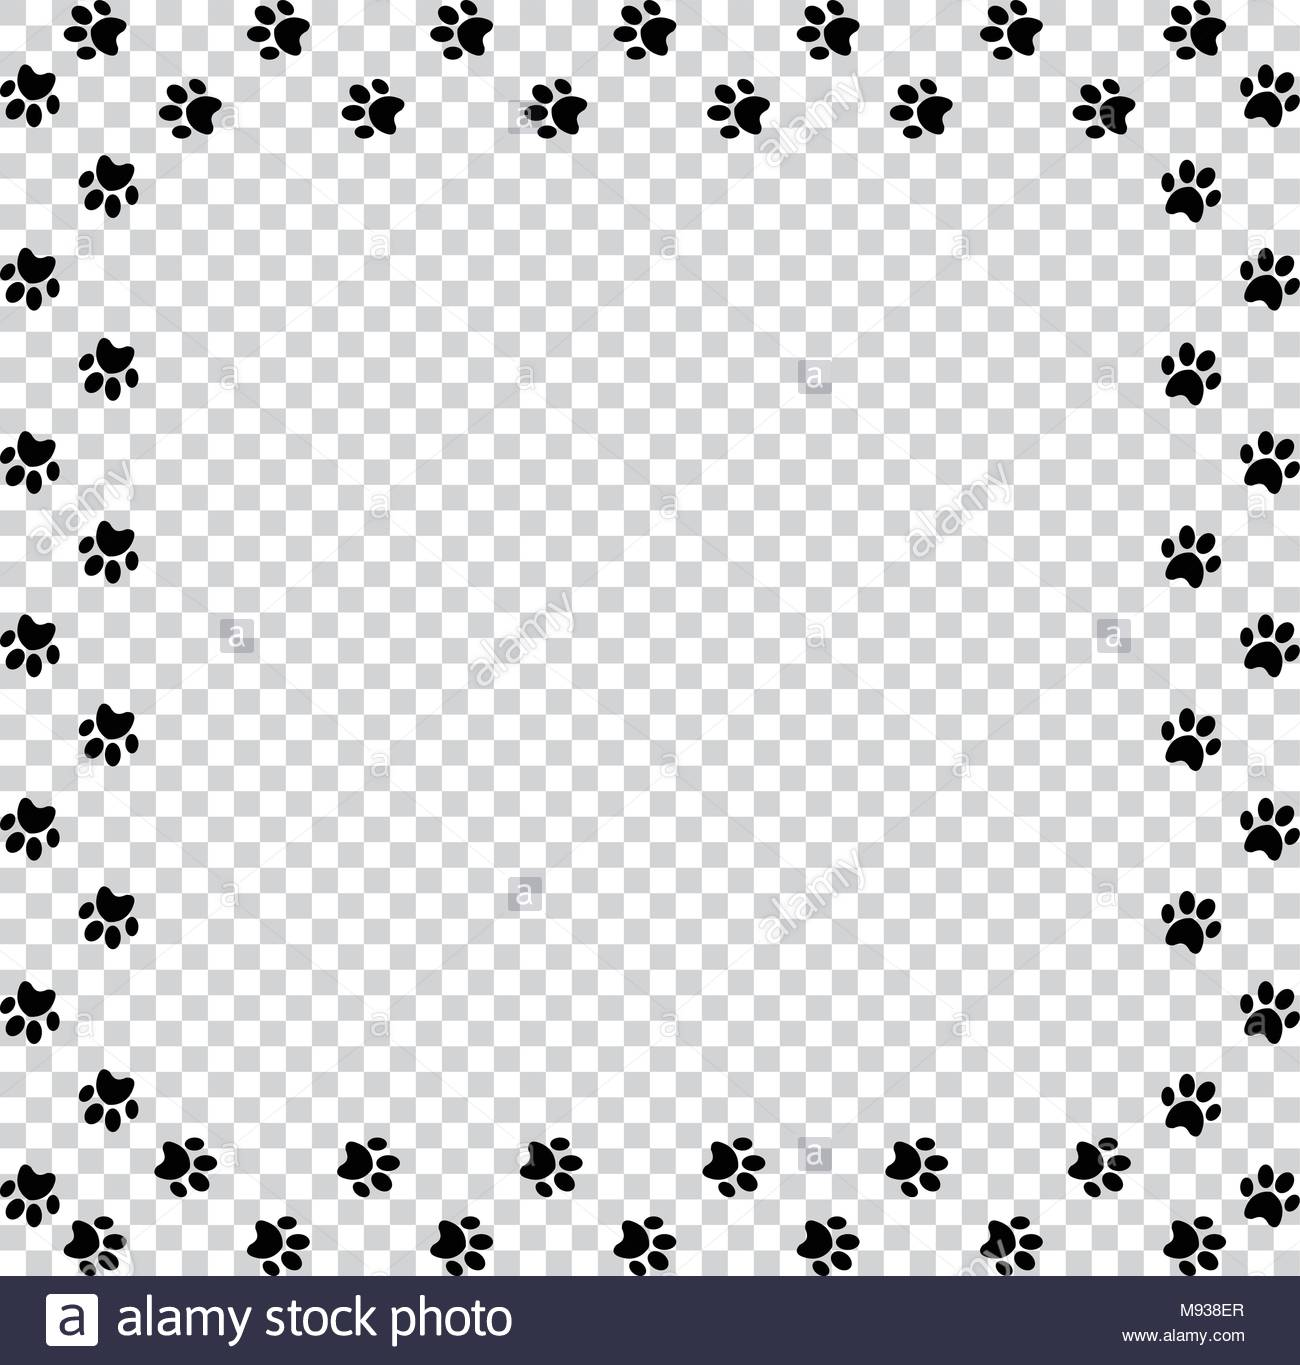 Square Frame Made Of Black Animal Paw Pr 703509 Png Images Pngio Here you can explore hq paw print transparent illustrations, icons and clipart with filter setting like size, type, color etc. pngio com